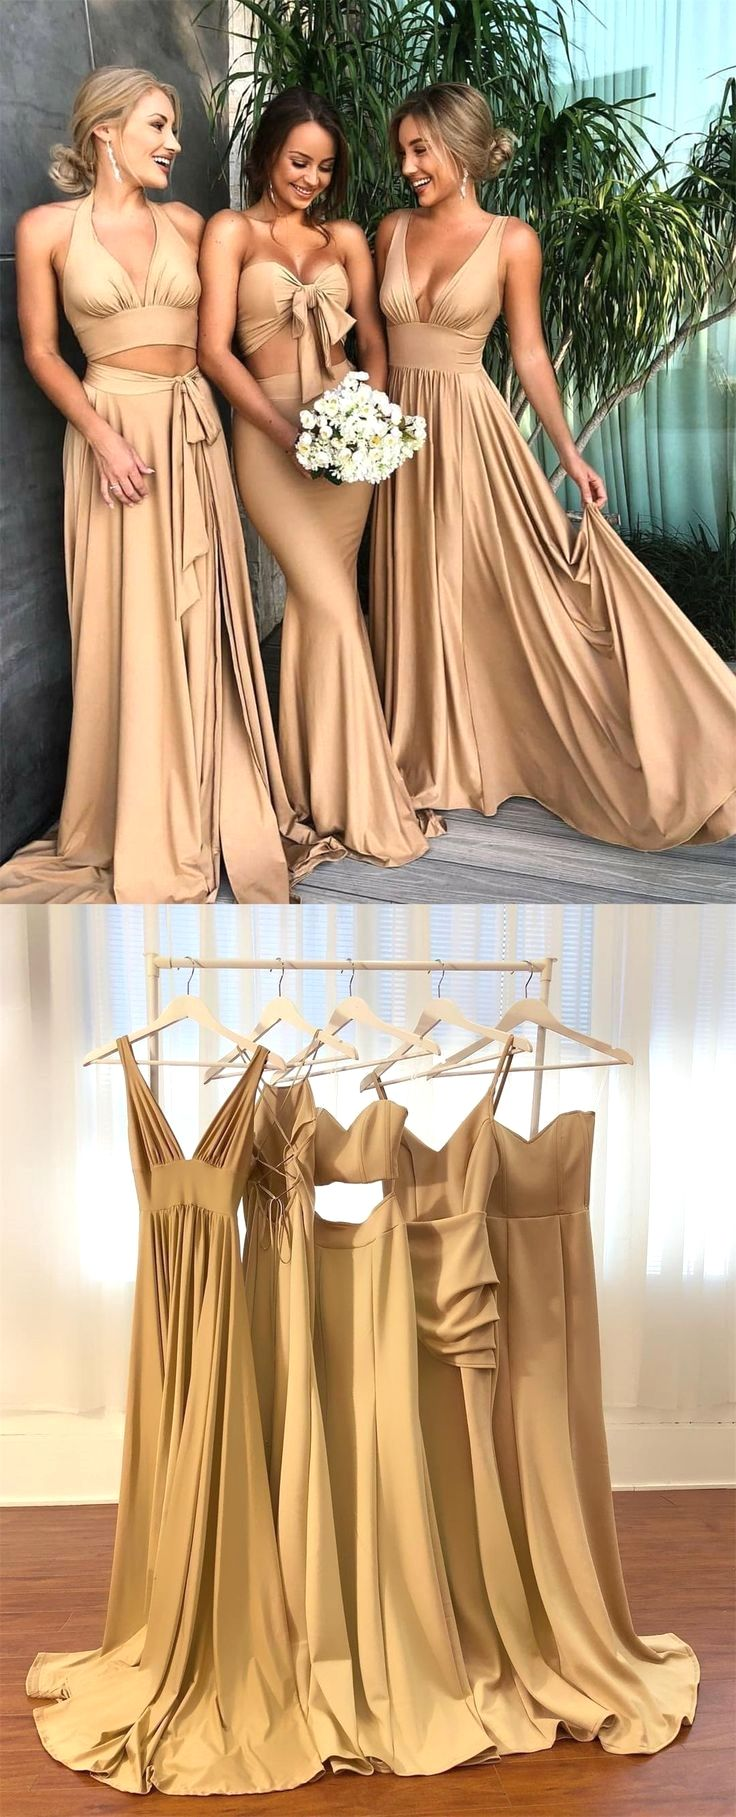 Best wedding dresses for the maids  Elegant wedding dress Forget about the bridegroom for the present